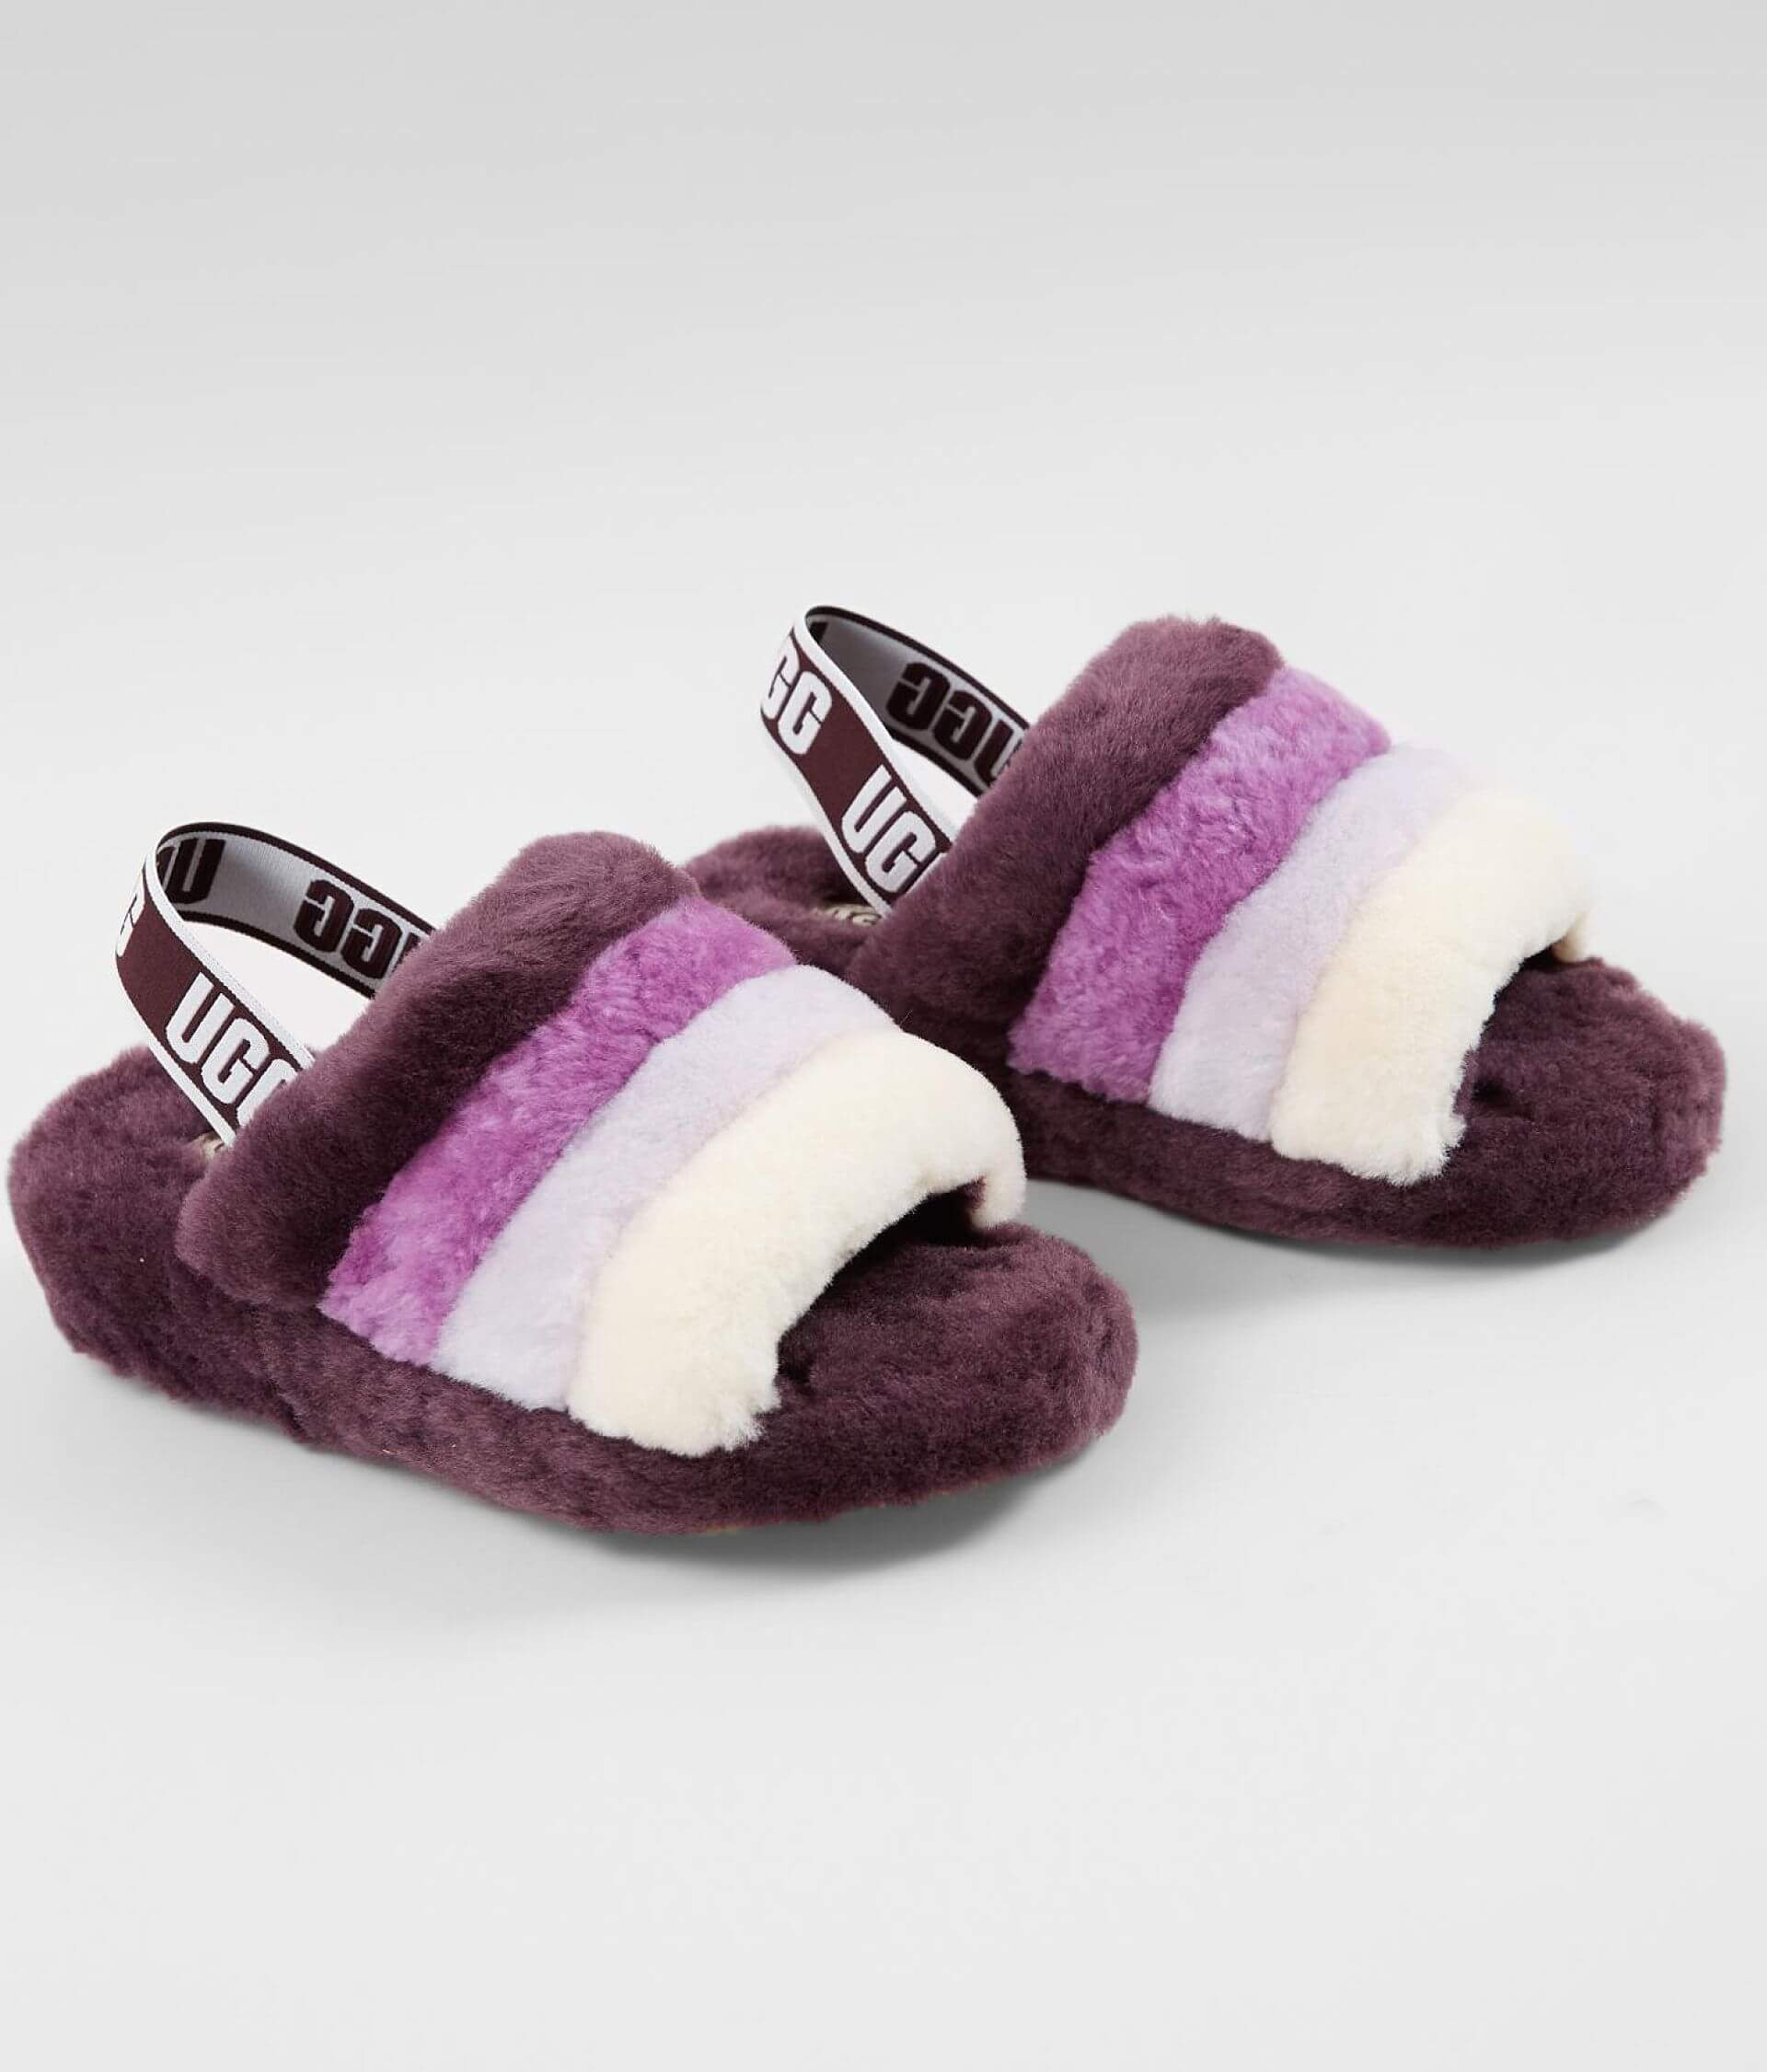 00d18845384 UGG® Fluff Yeah Slide - Women's Shoes in Port Multi | Buckle